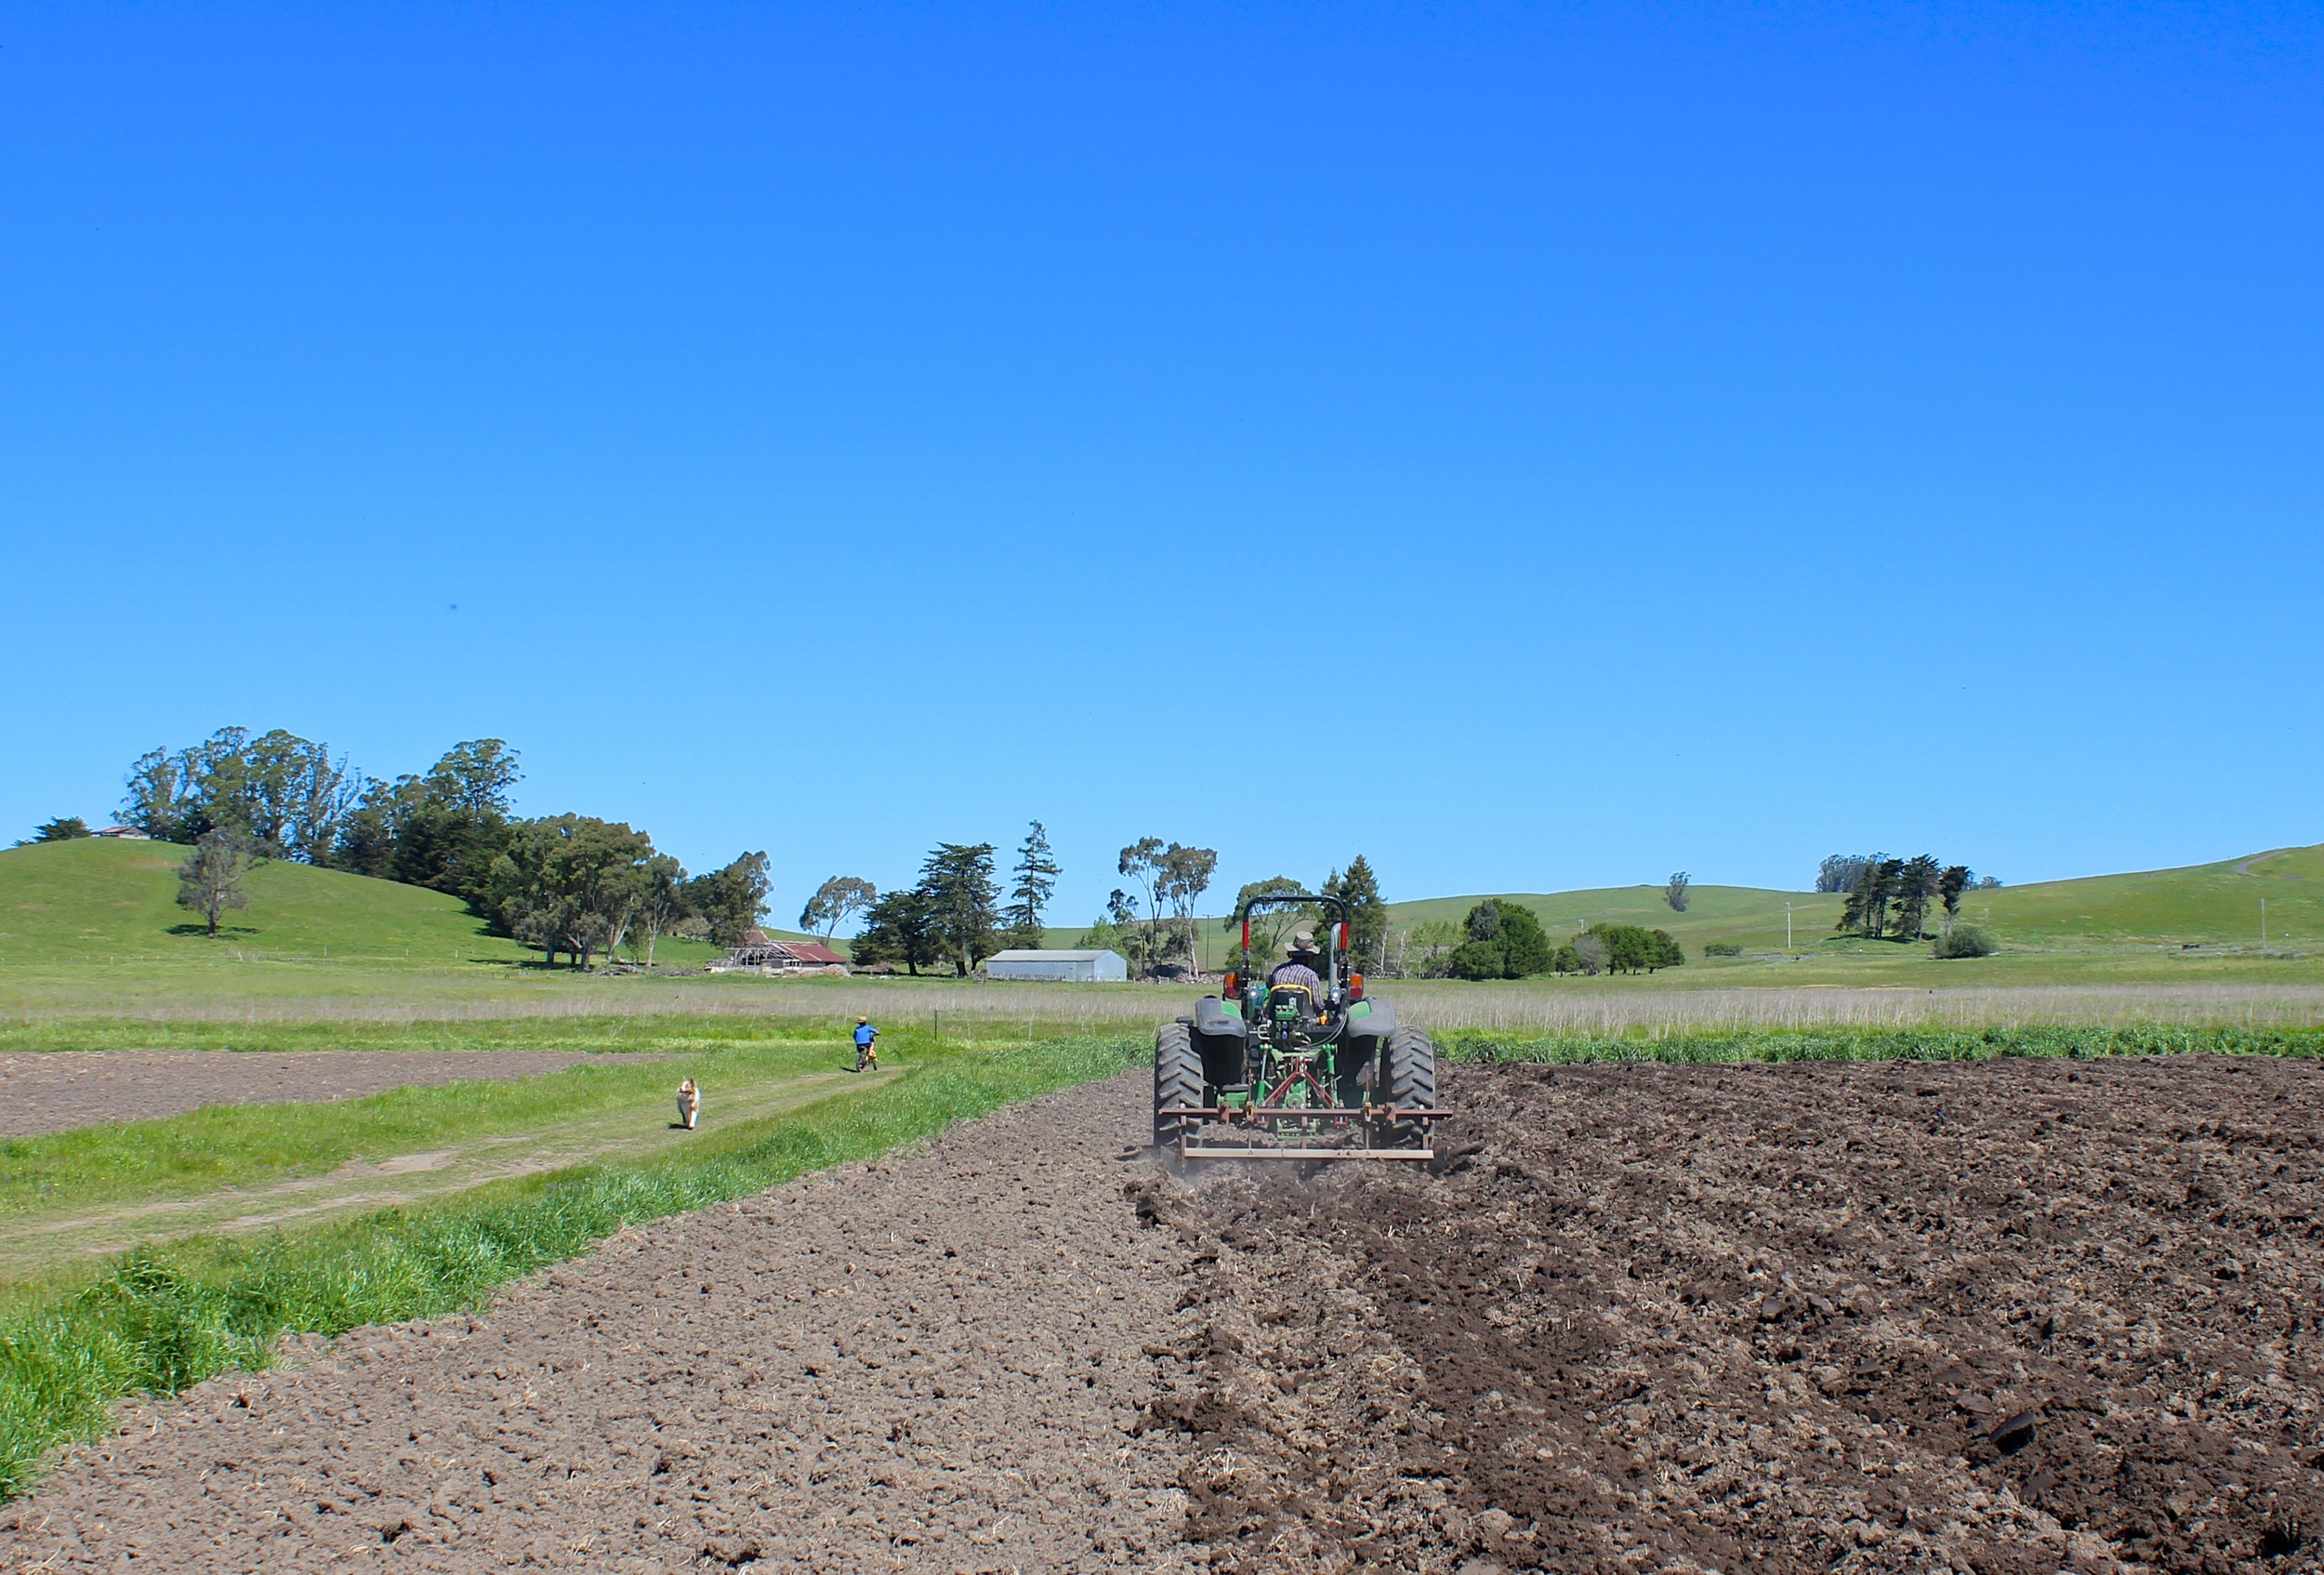 Jay shaping beds for potatoes as Oliver and Rosie pass by.